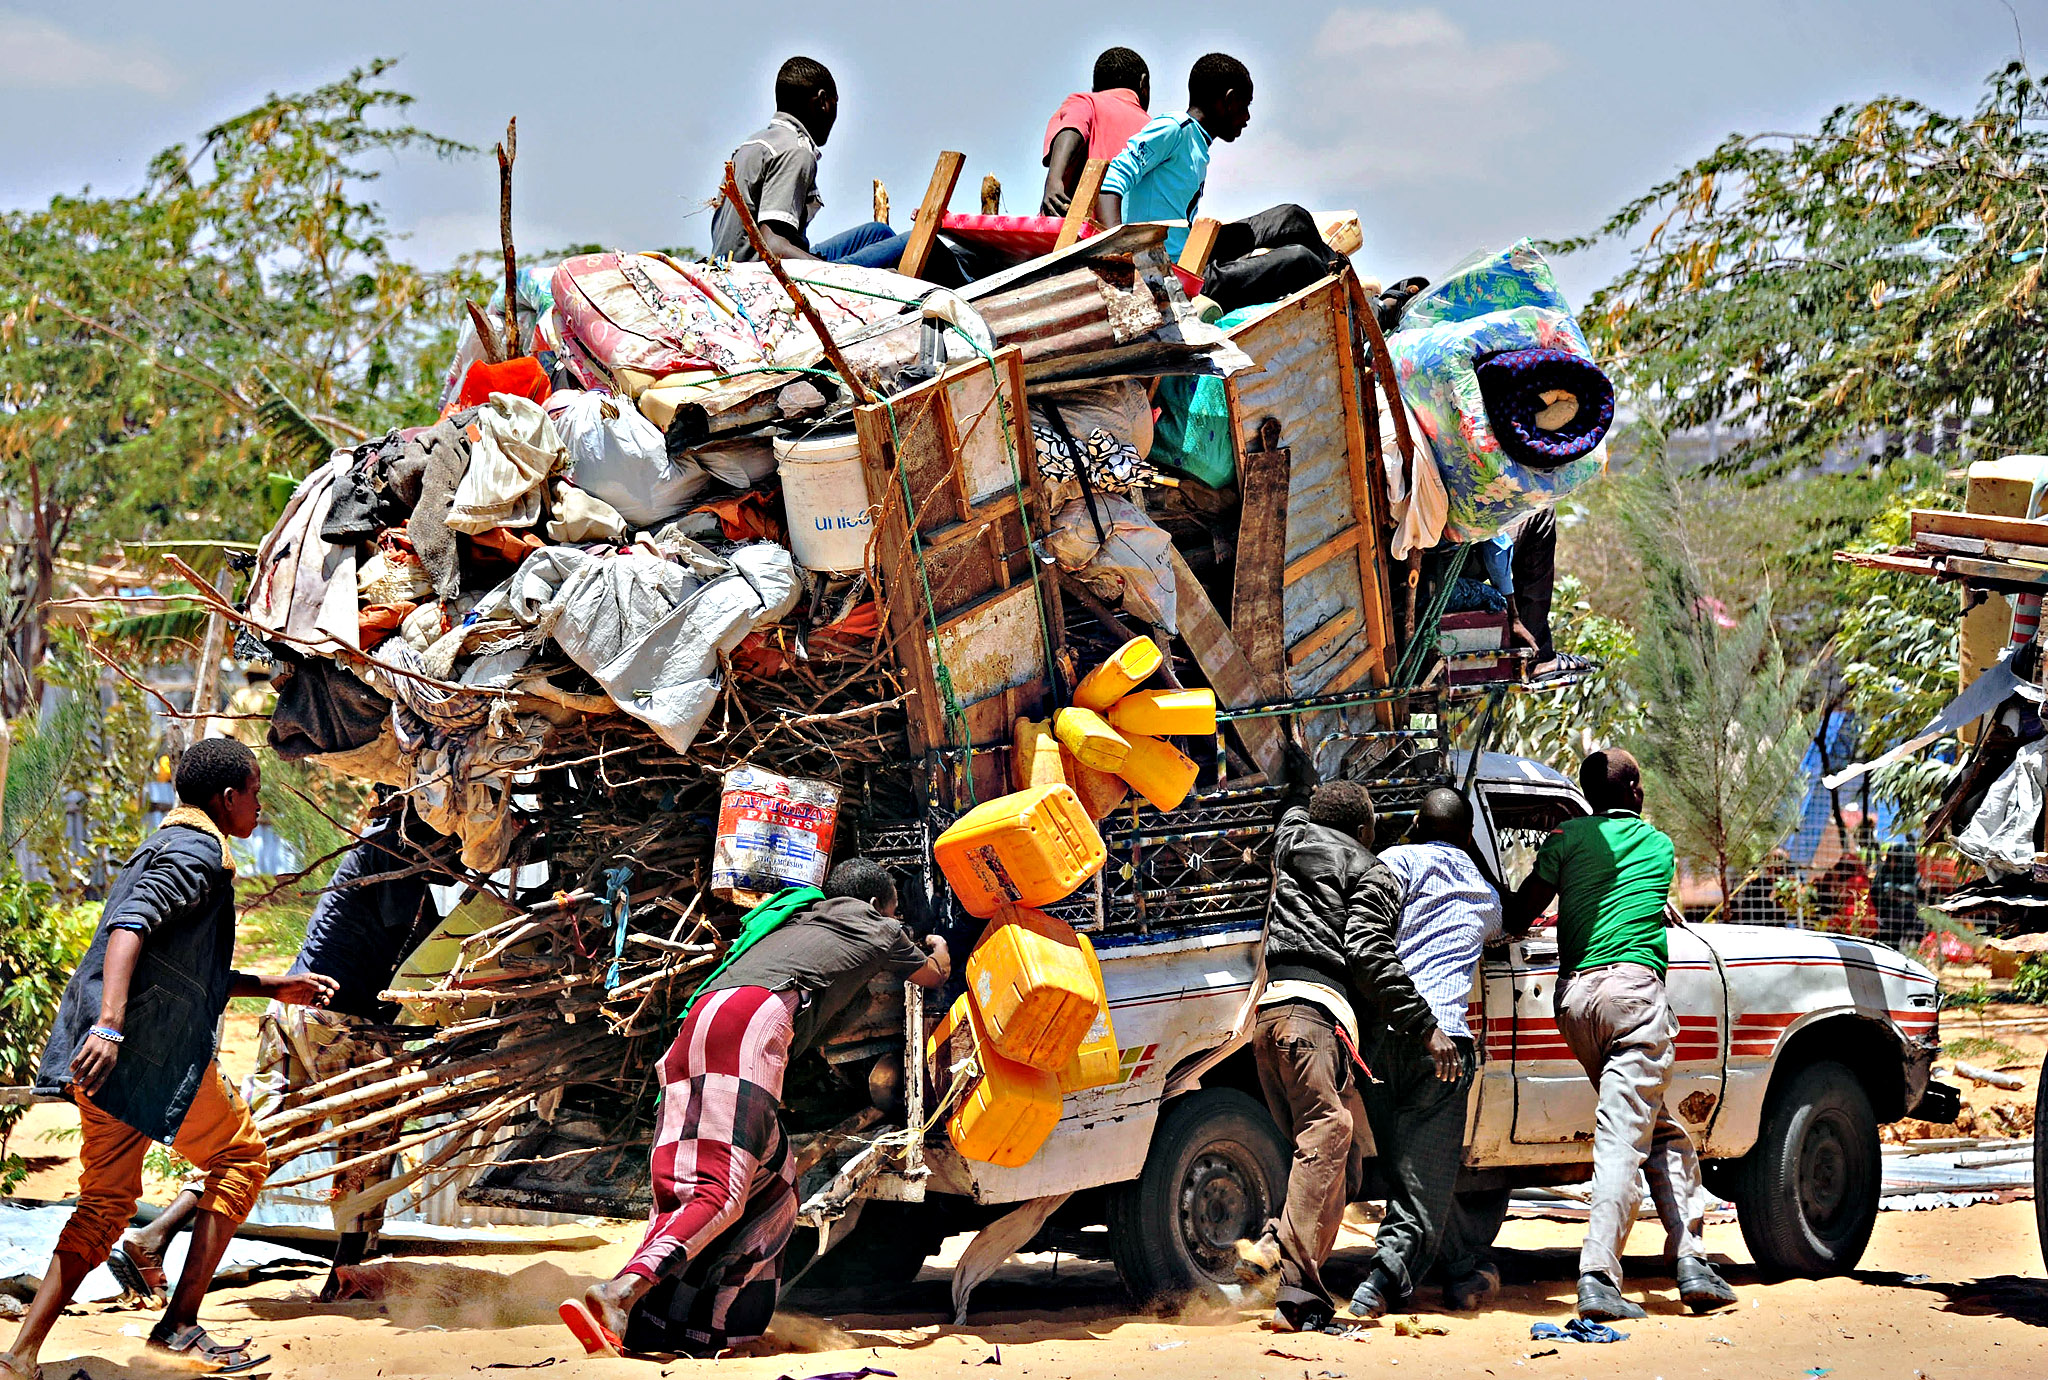 Somali refugees carry their belongings after their temporary shelters were destroyed by Somali soldiers on March 4, 2015 at the Sarkusta refugee camp in southern Mogadishu. Dozens of houses and shops were destroyed in the area after the Somali government ordered the demolition of makeshift homes.